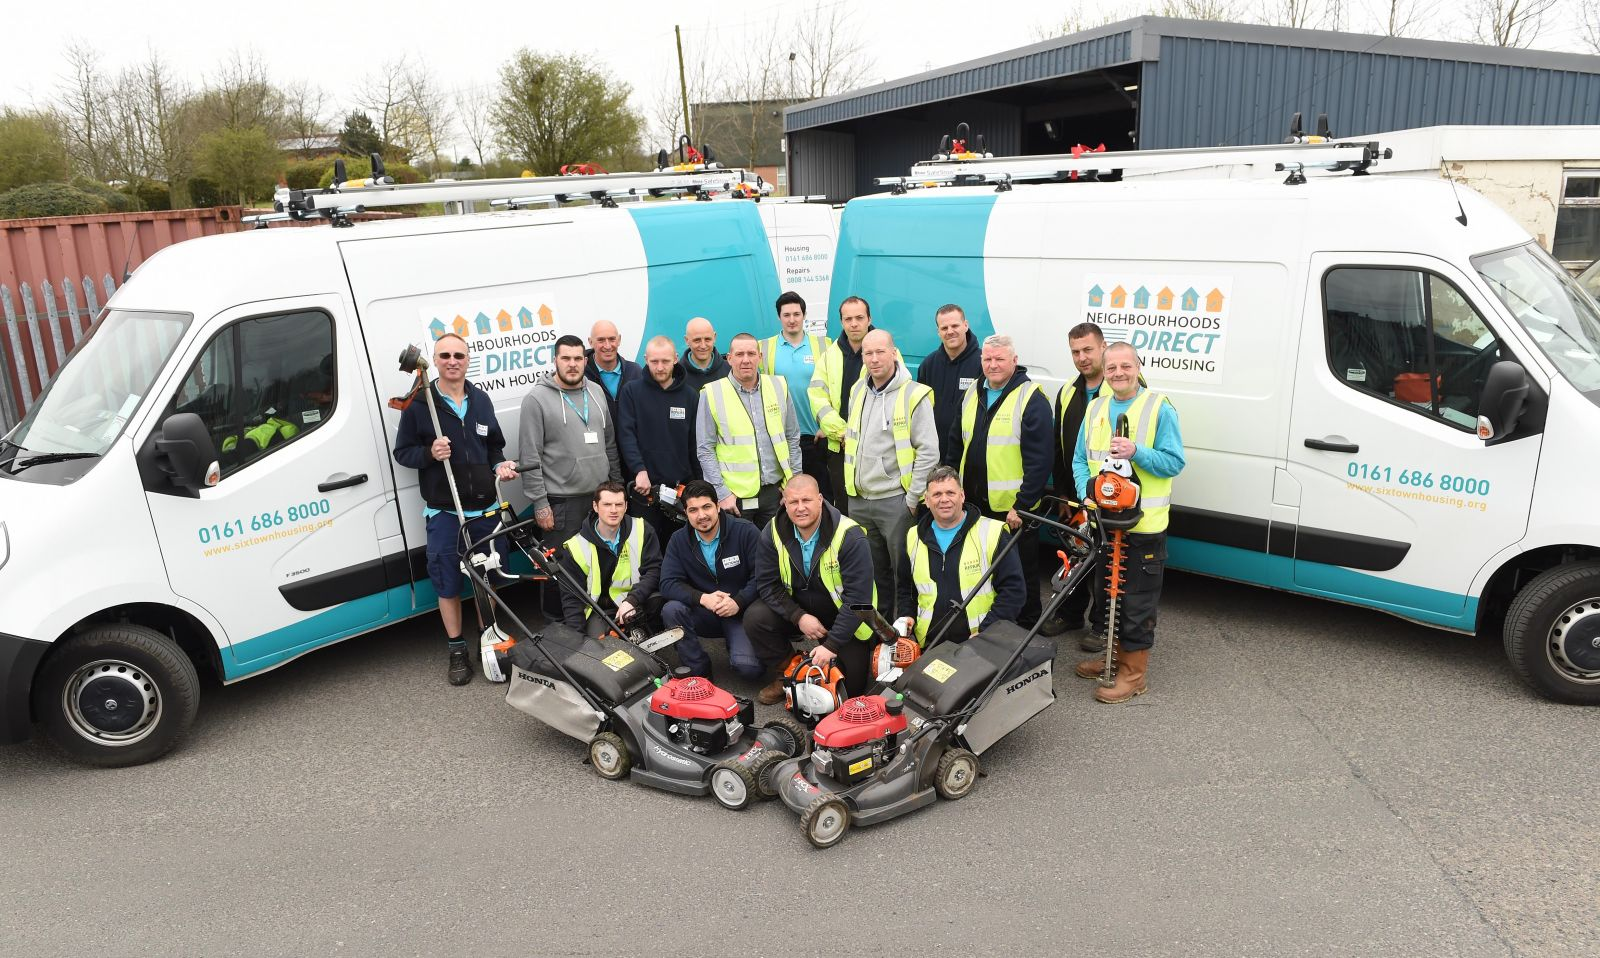 Six Town Housing's Maintenance Team will provide a more localised service